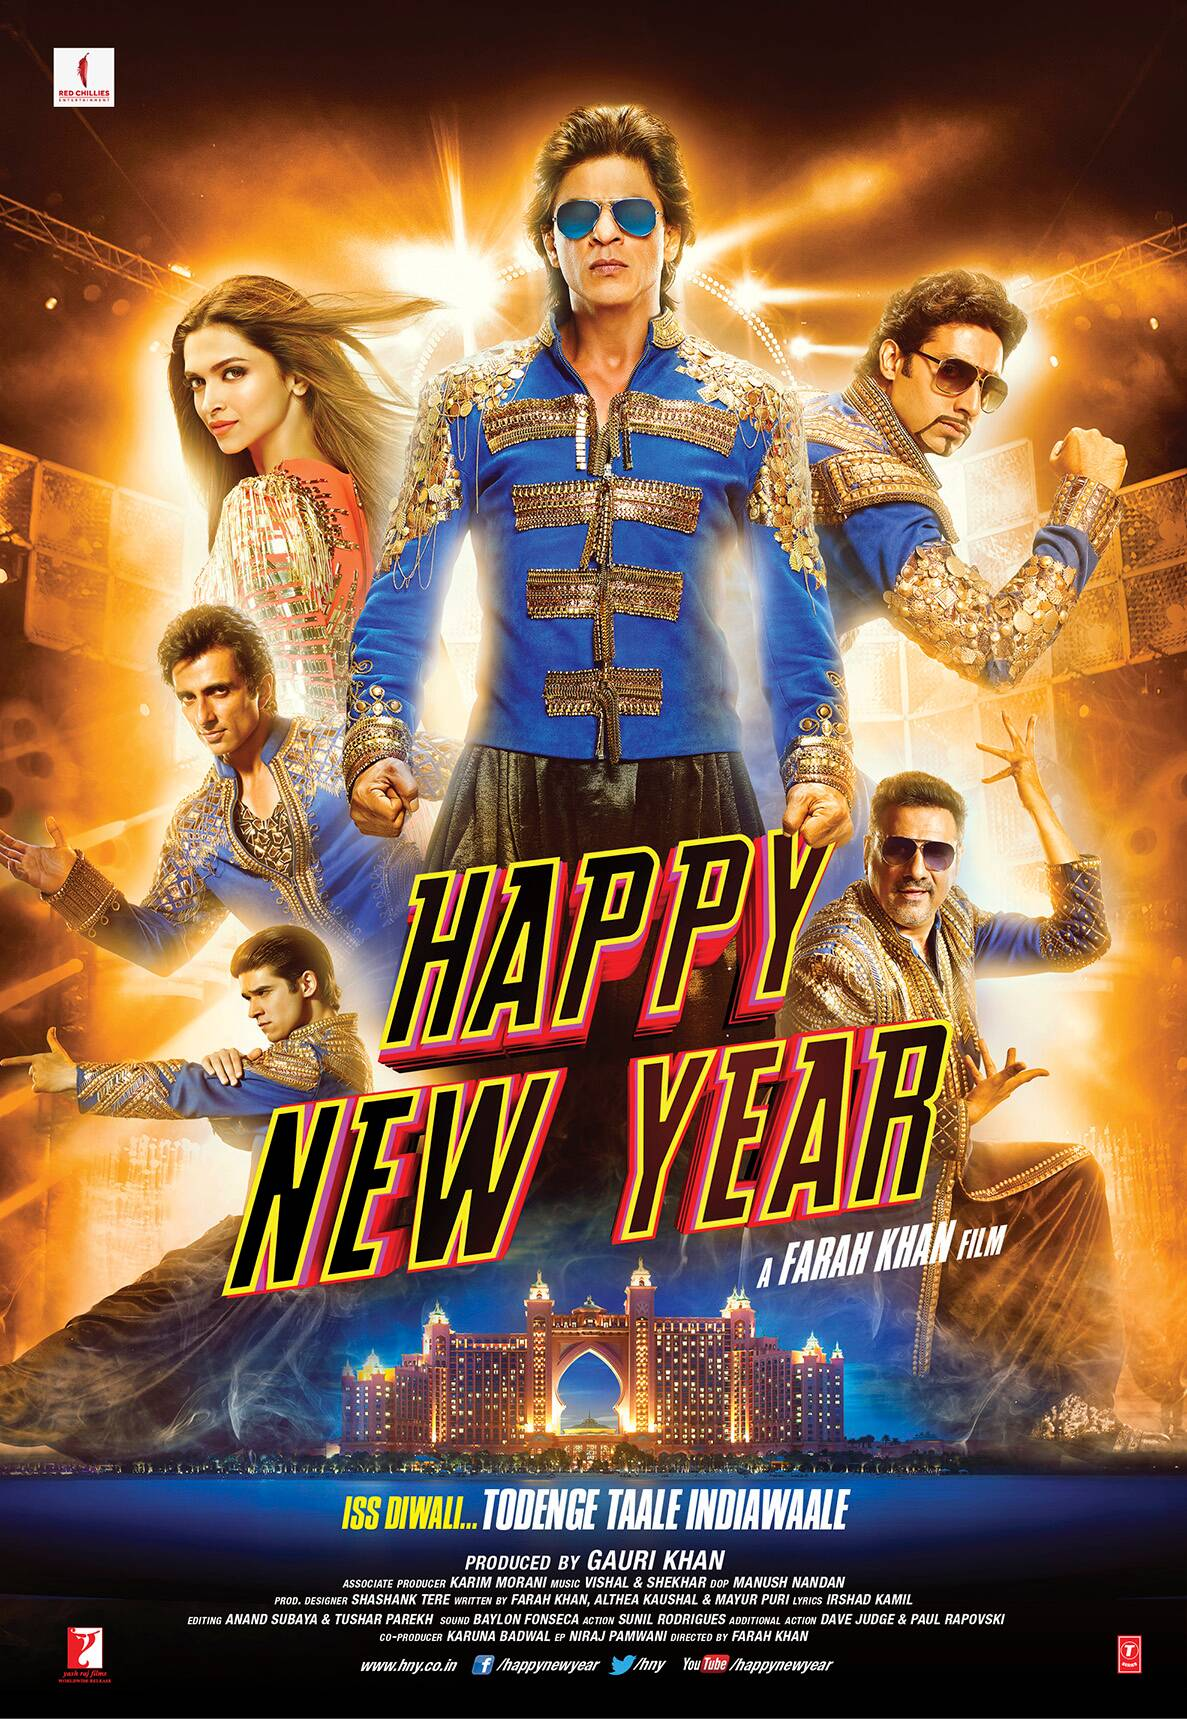 Revealed: SRK, Abhishek, Deepika glitter in gold for 'Happy New Year'